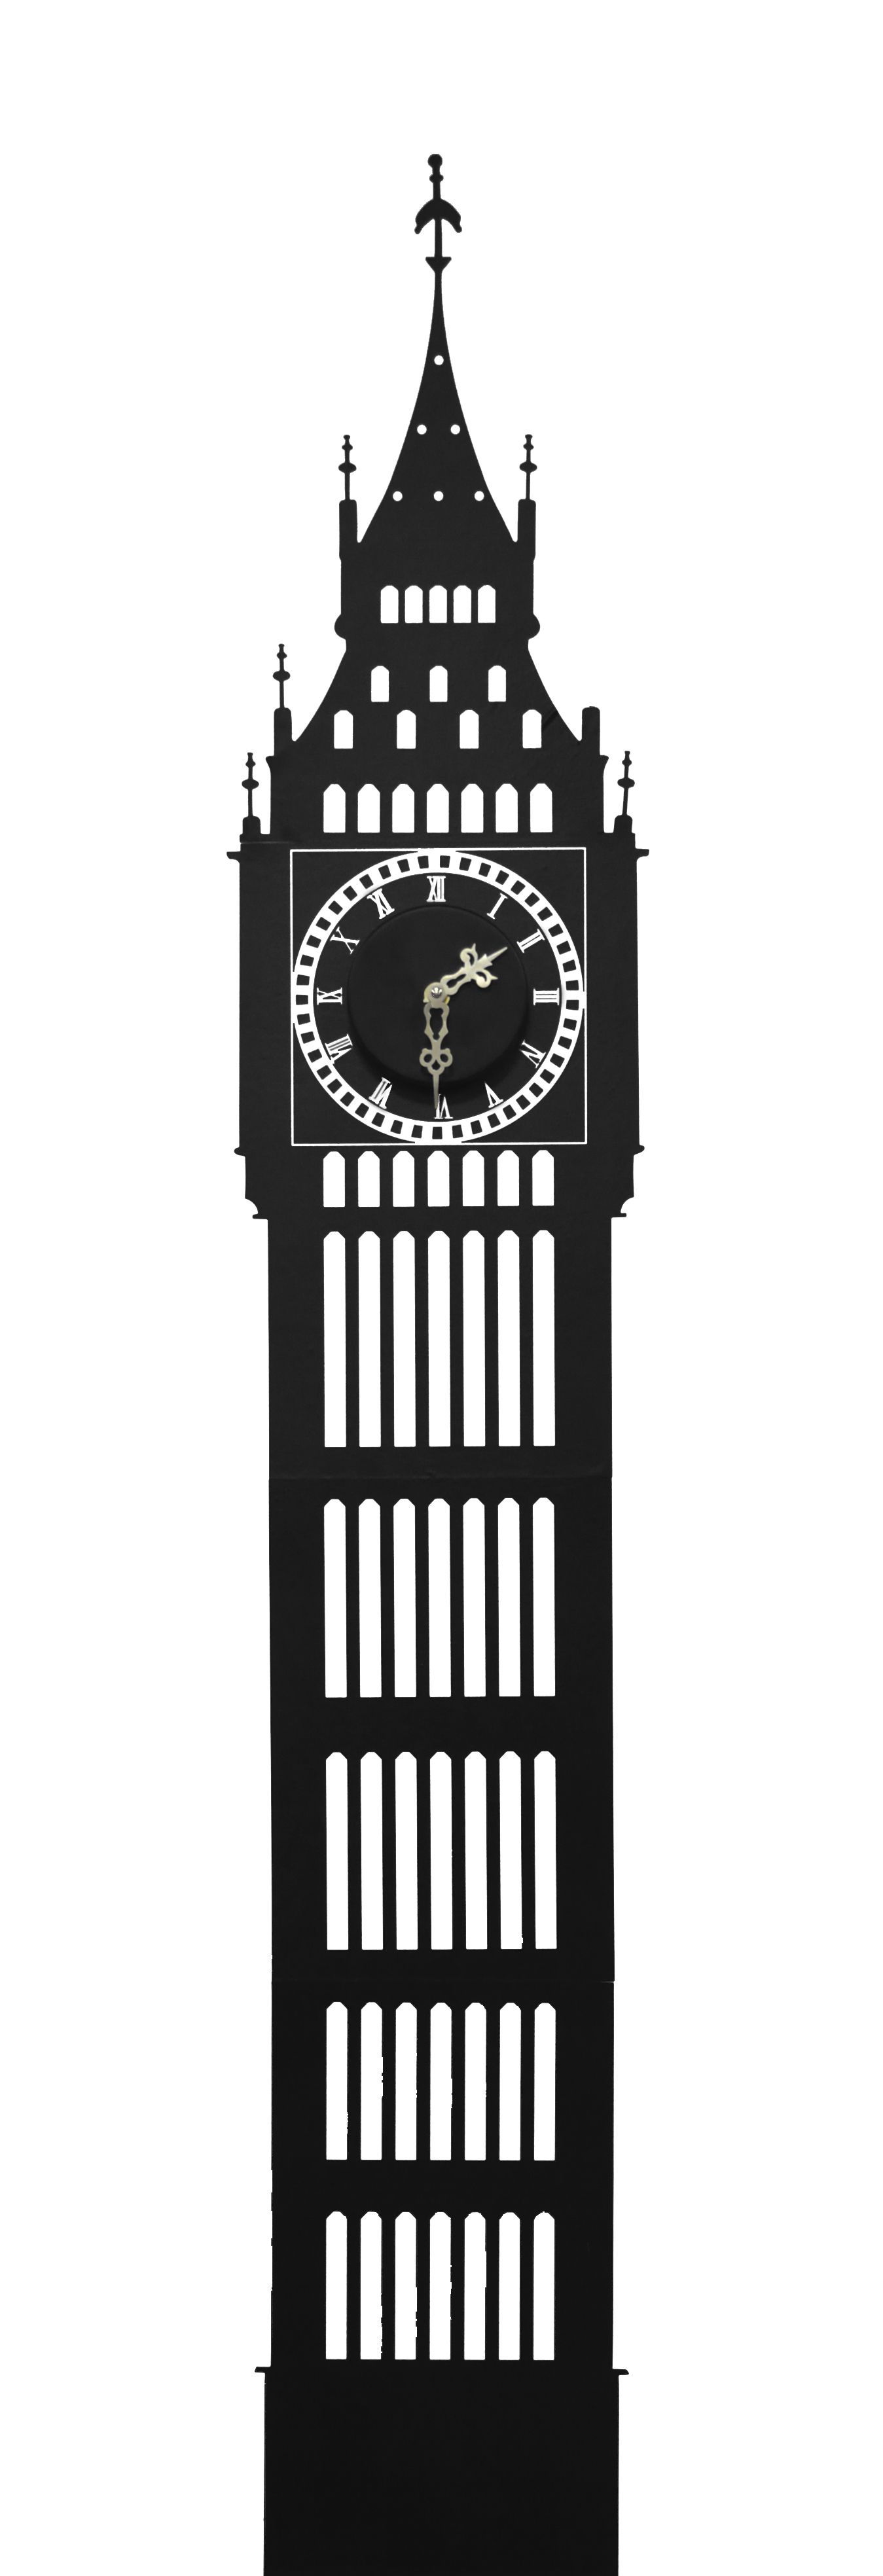 big ben wall sticker clock big ben silhouettes and google search the big ben wall sticker mounted clock novelty iconic design